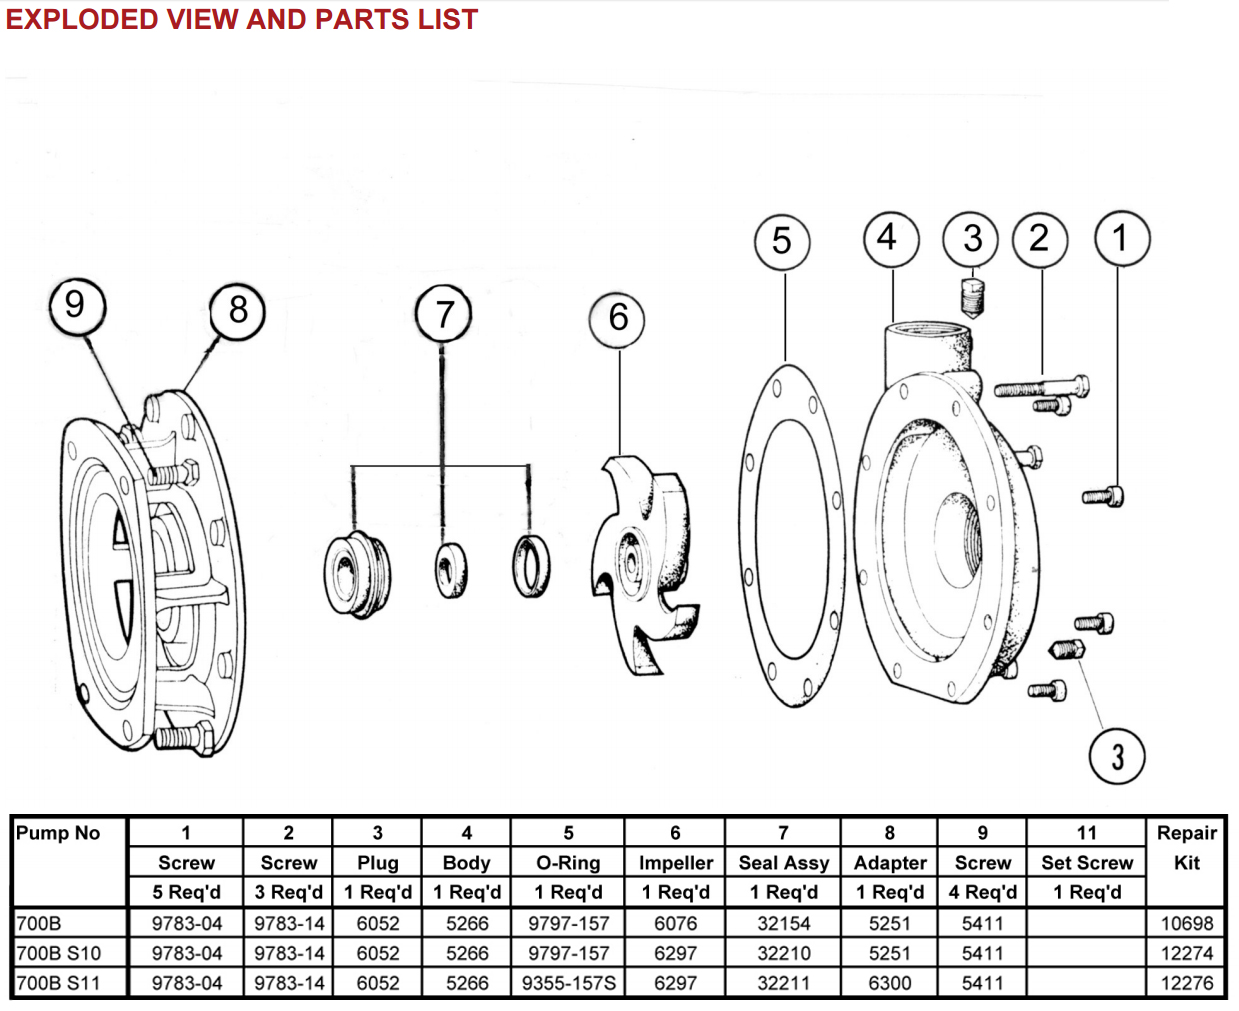 Oberdorfer 700B Exploded View and Parts List